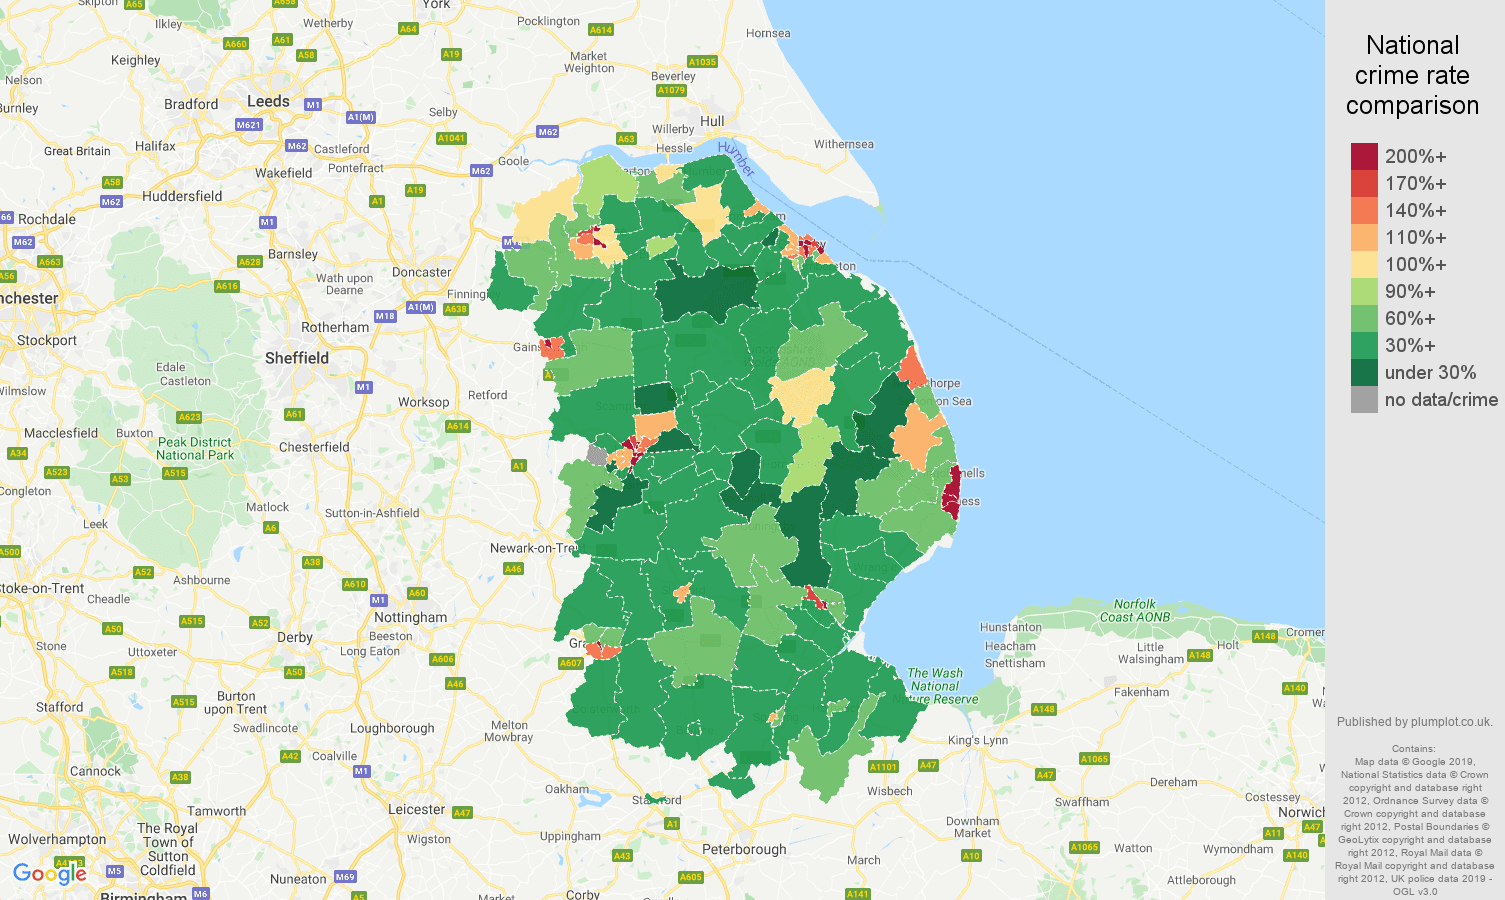 Lincolnshire public order crime rate comparison map